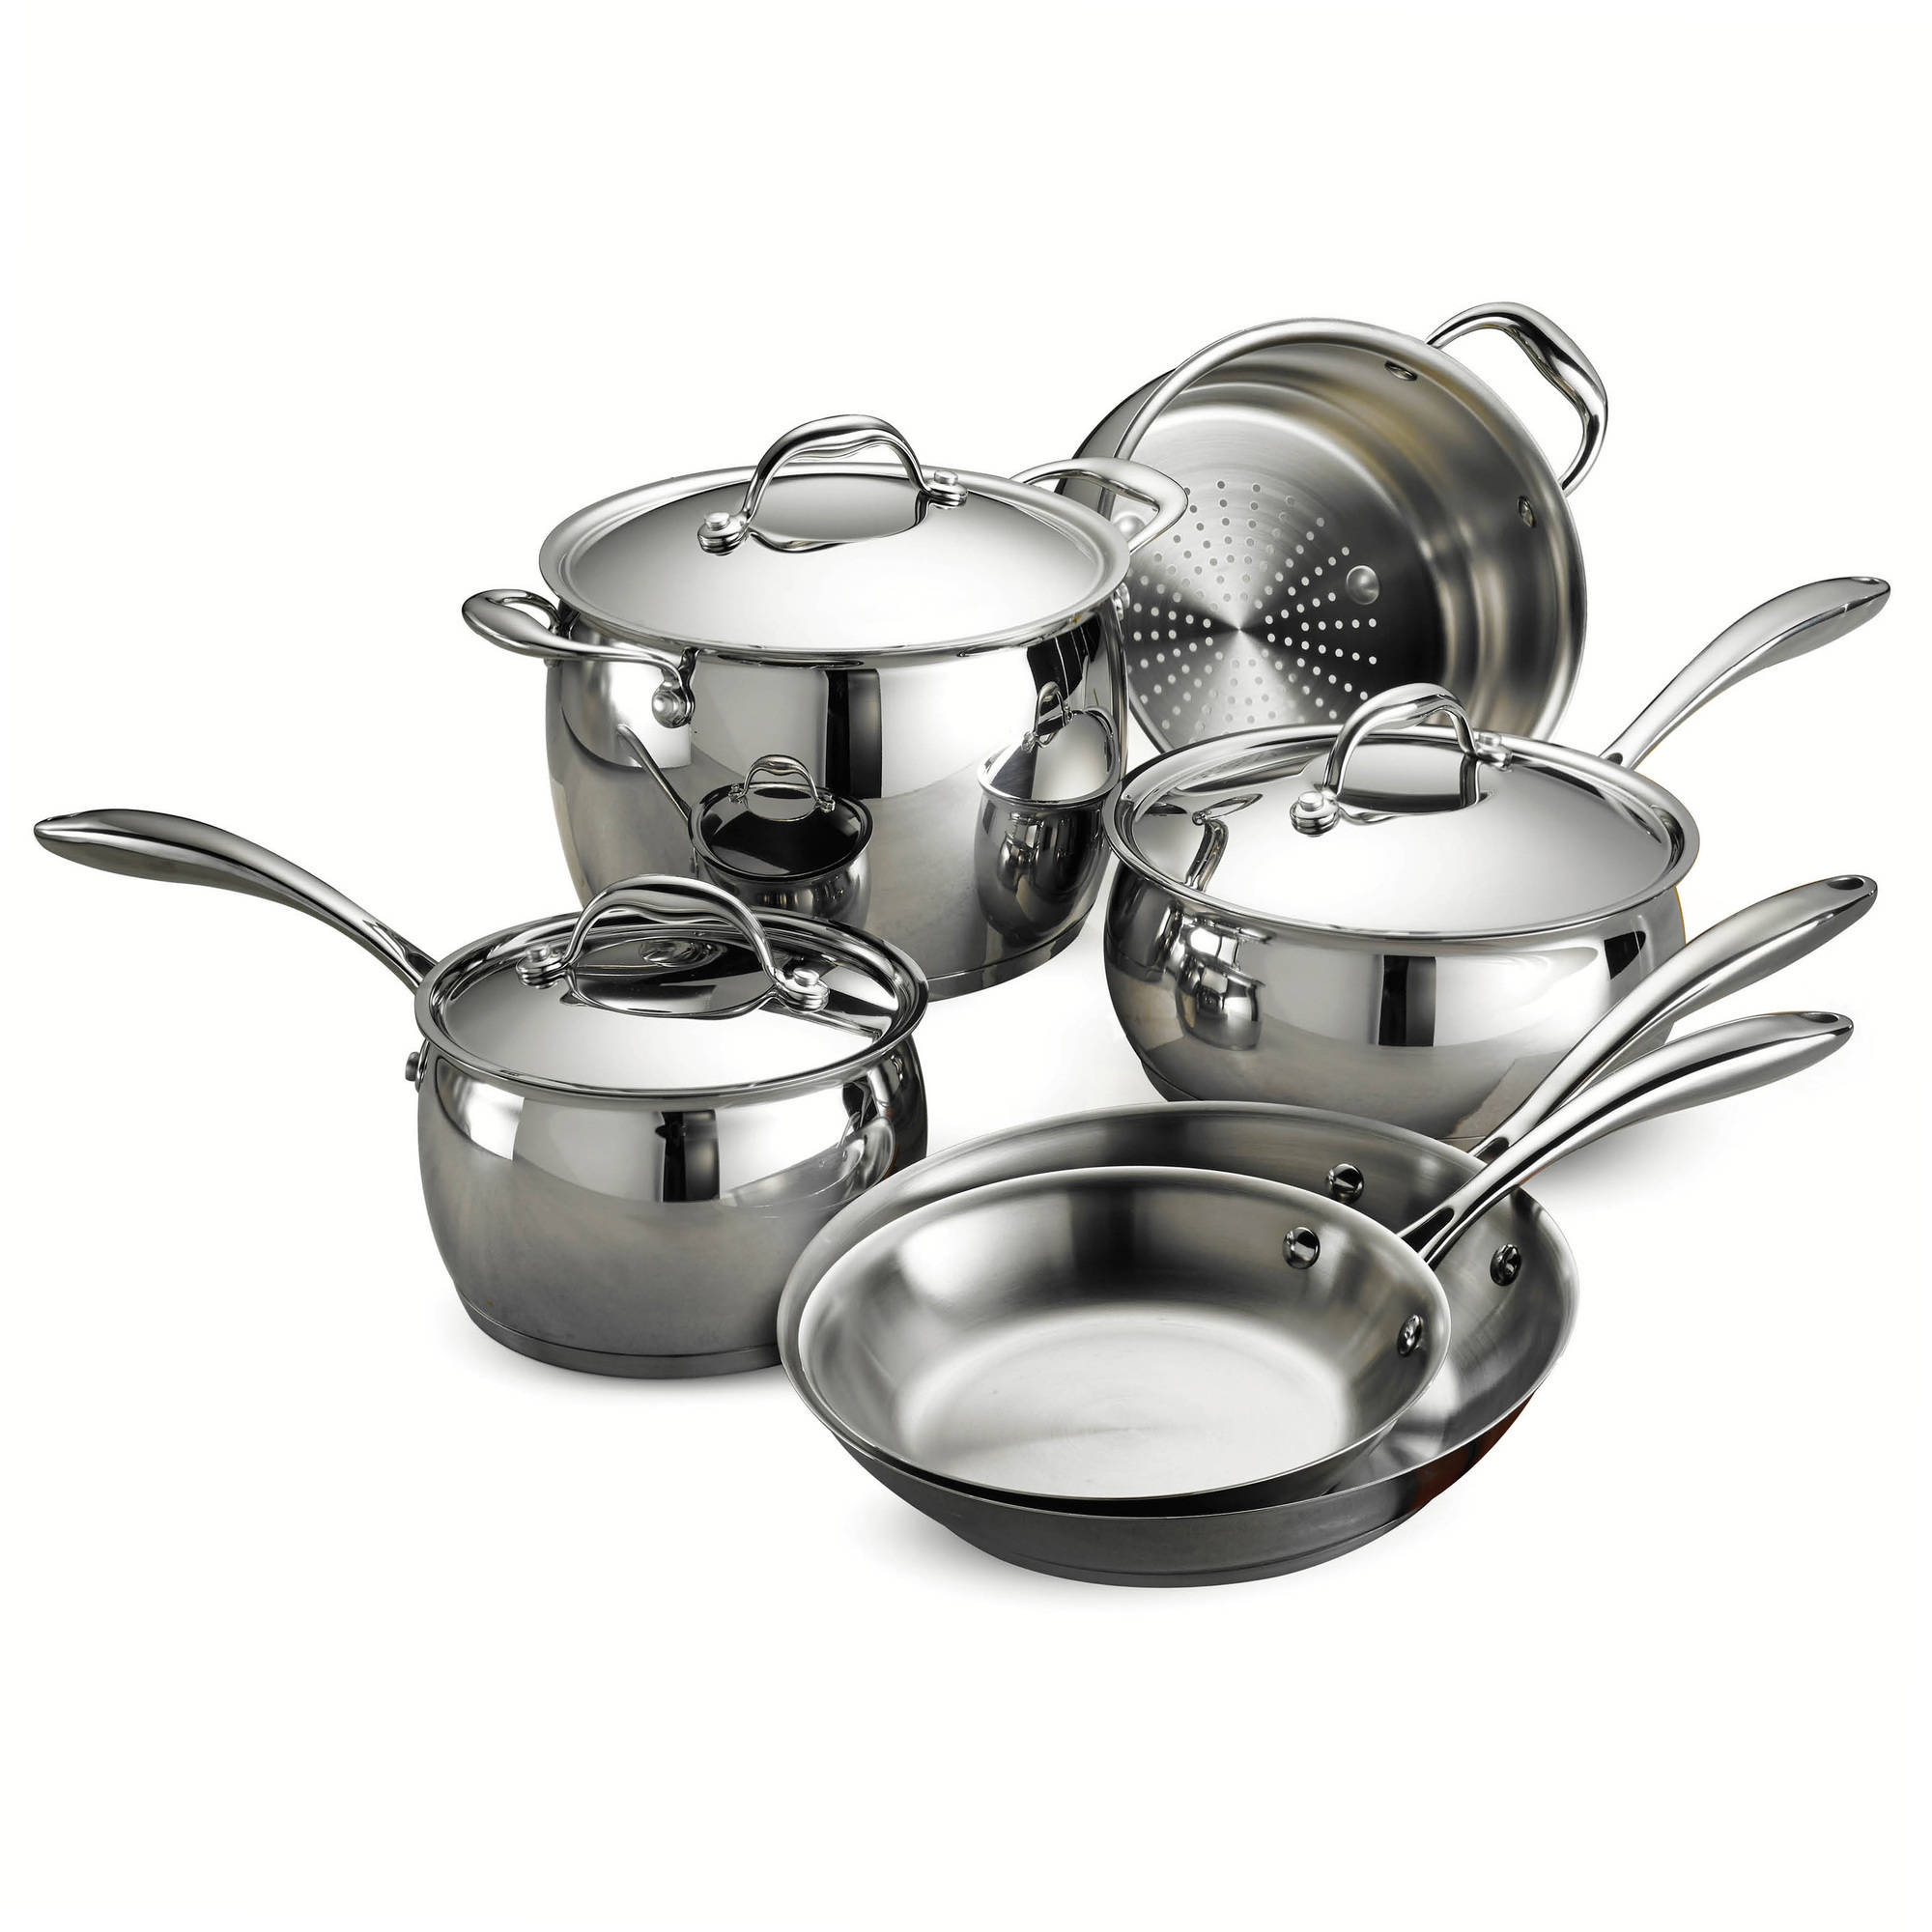 Tramontina Gourmet Domus Stainless Steel 9-Piece Cookware Set by Tramontina USA Inc.